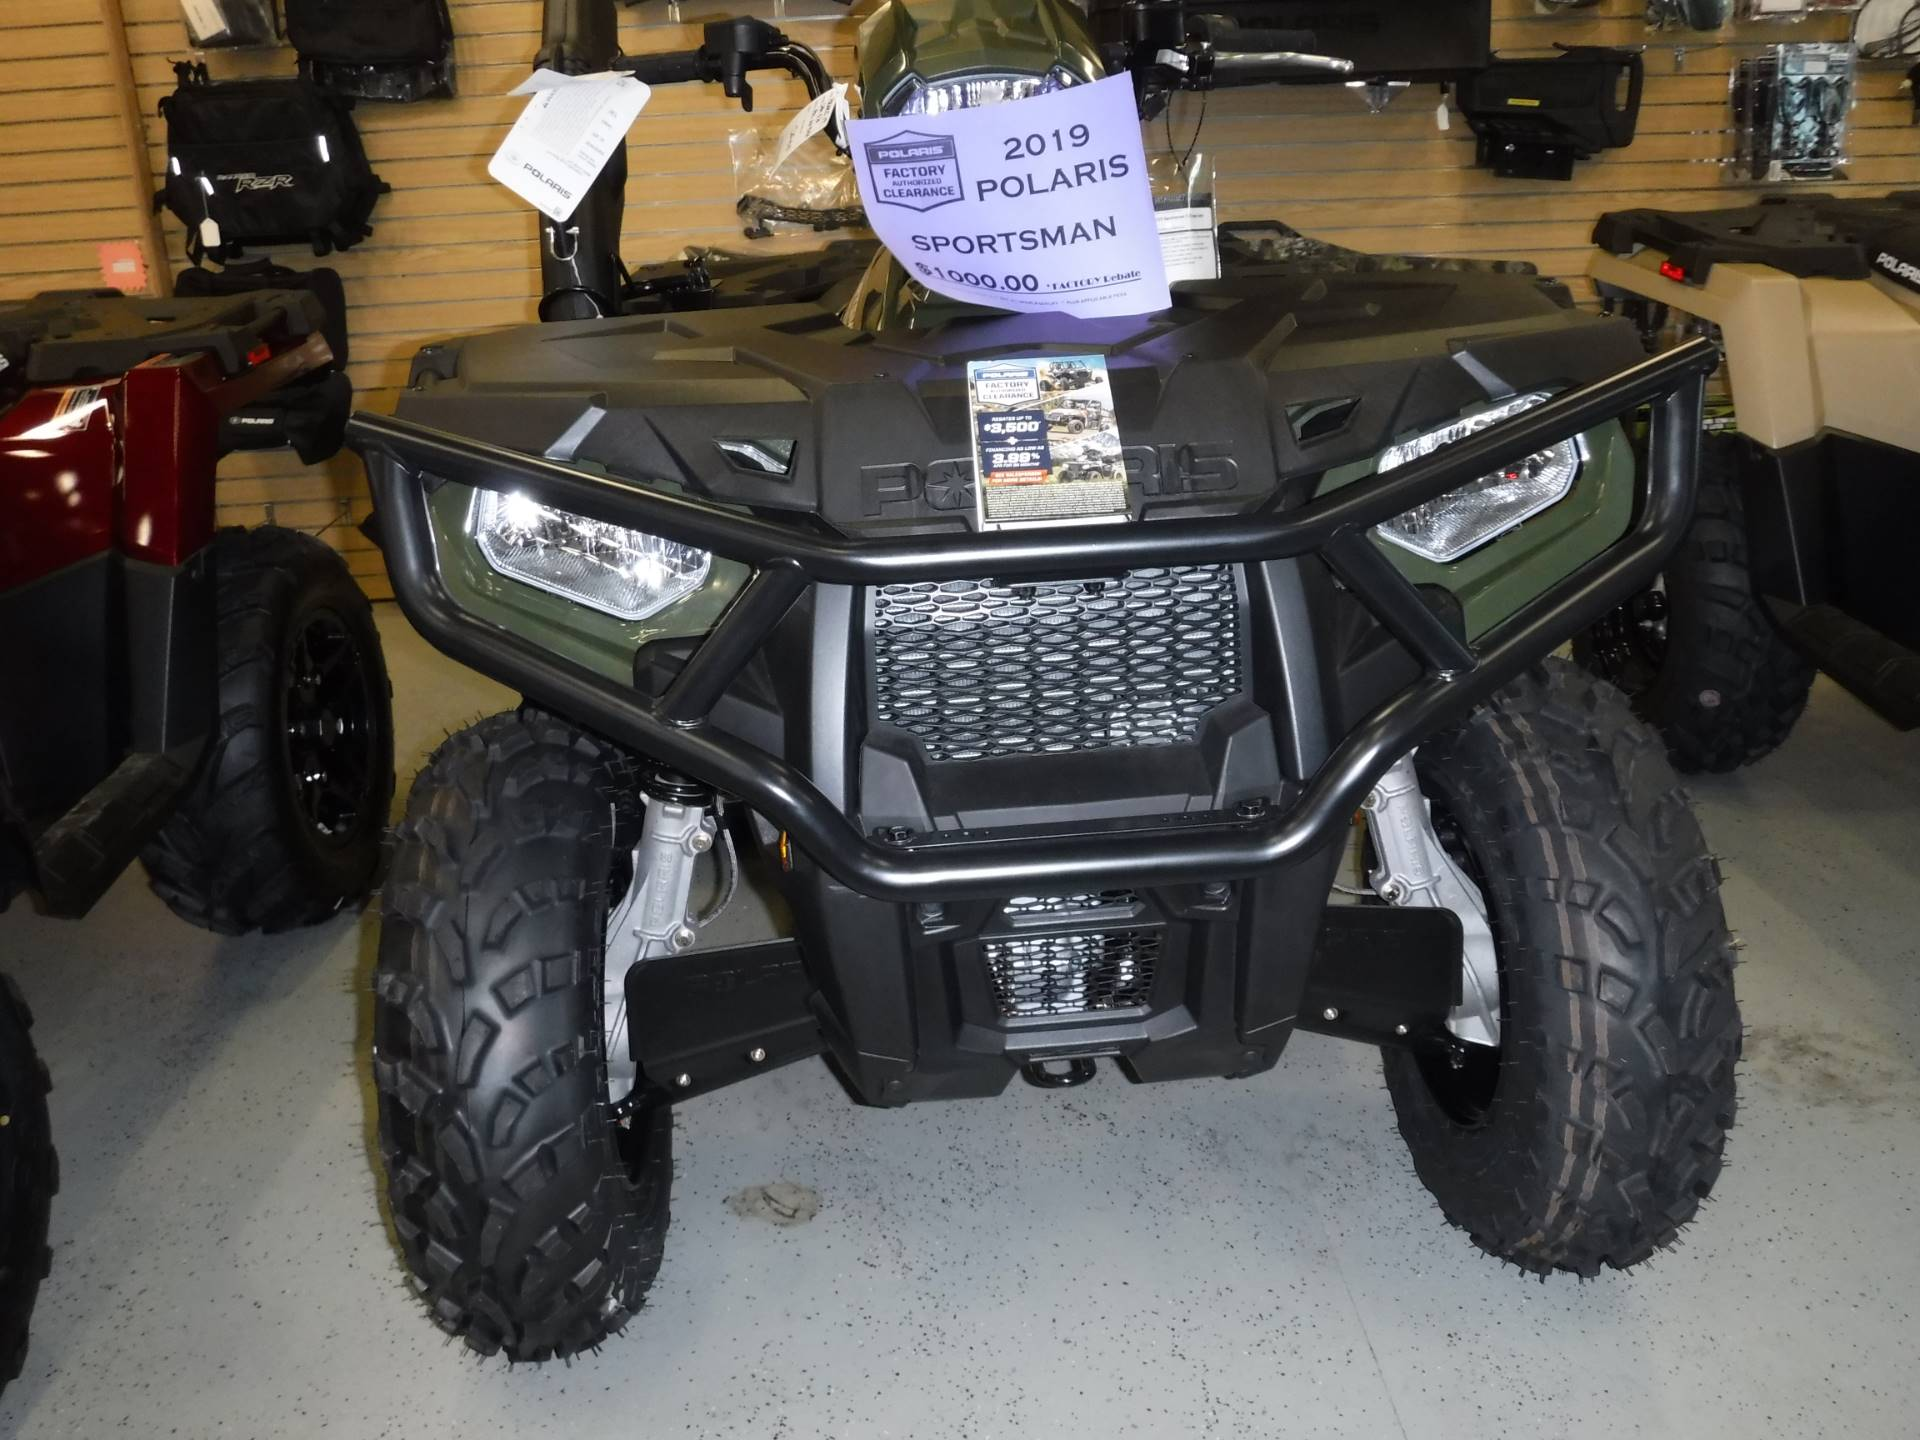 2019 Polaris Sportsman 570 in Hermitage, Pennsylvania - Photo 2